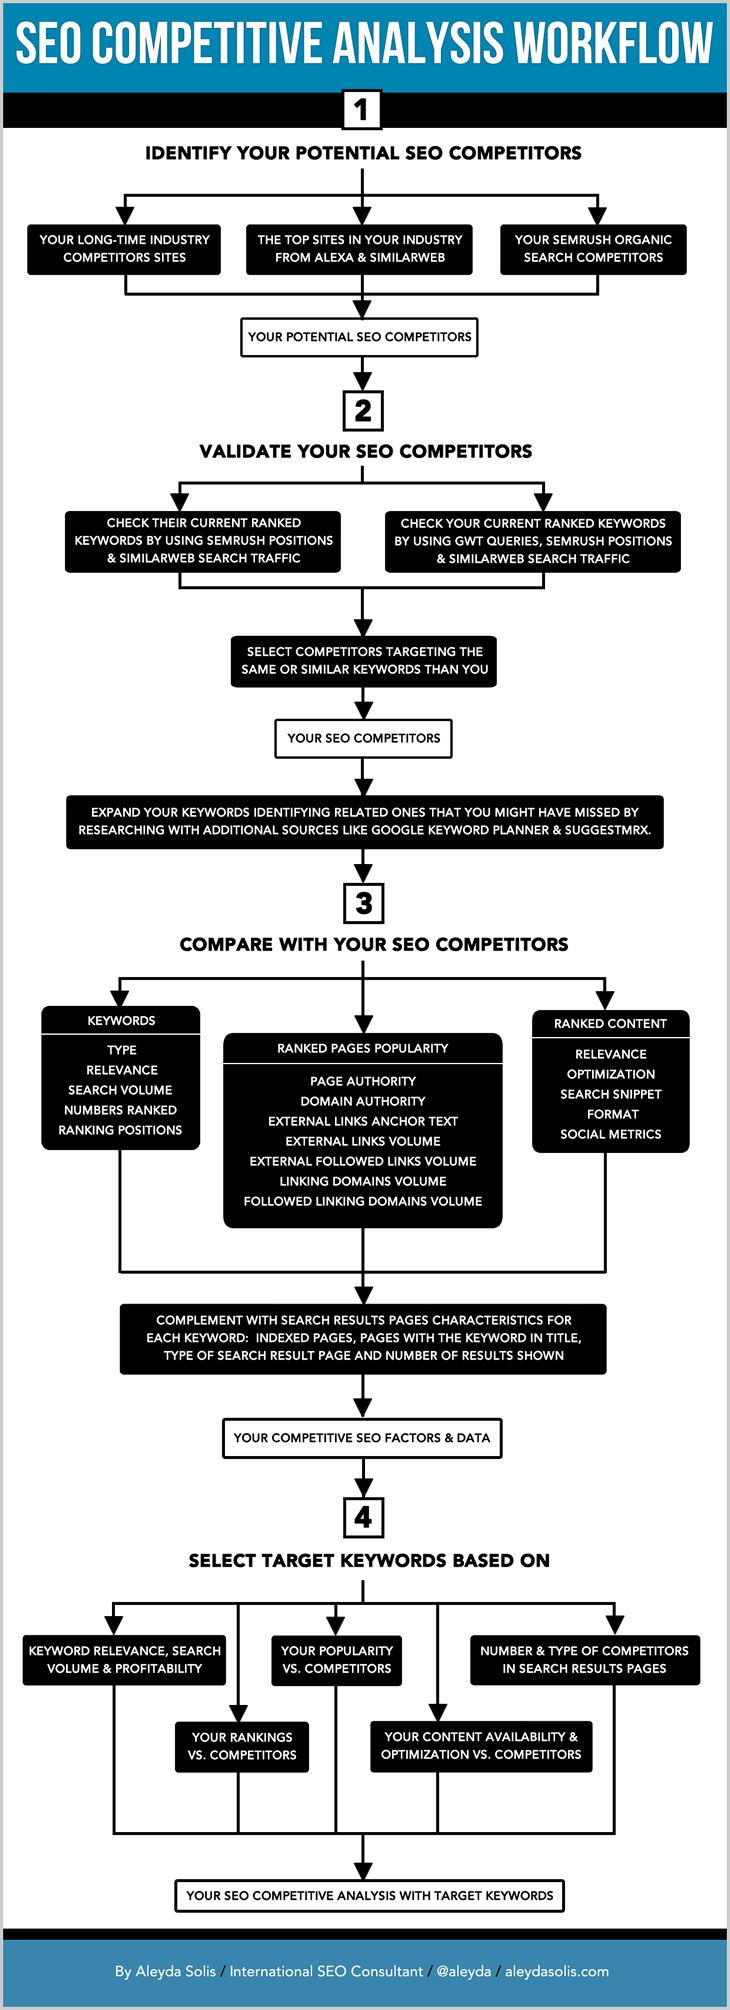 The Illustrated SEO Competitive Analysis Workflow